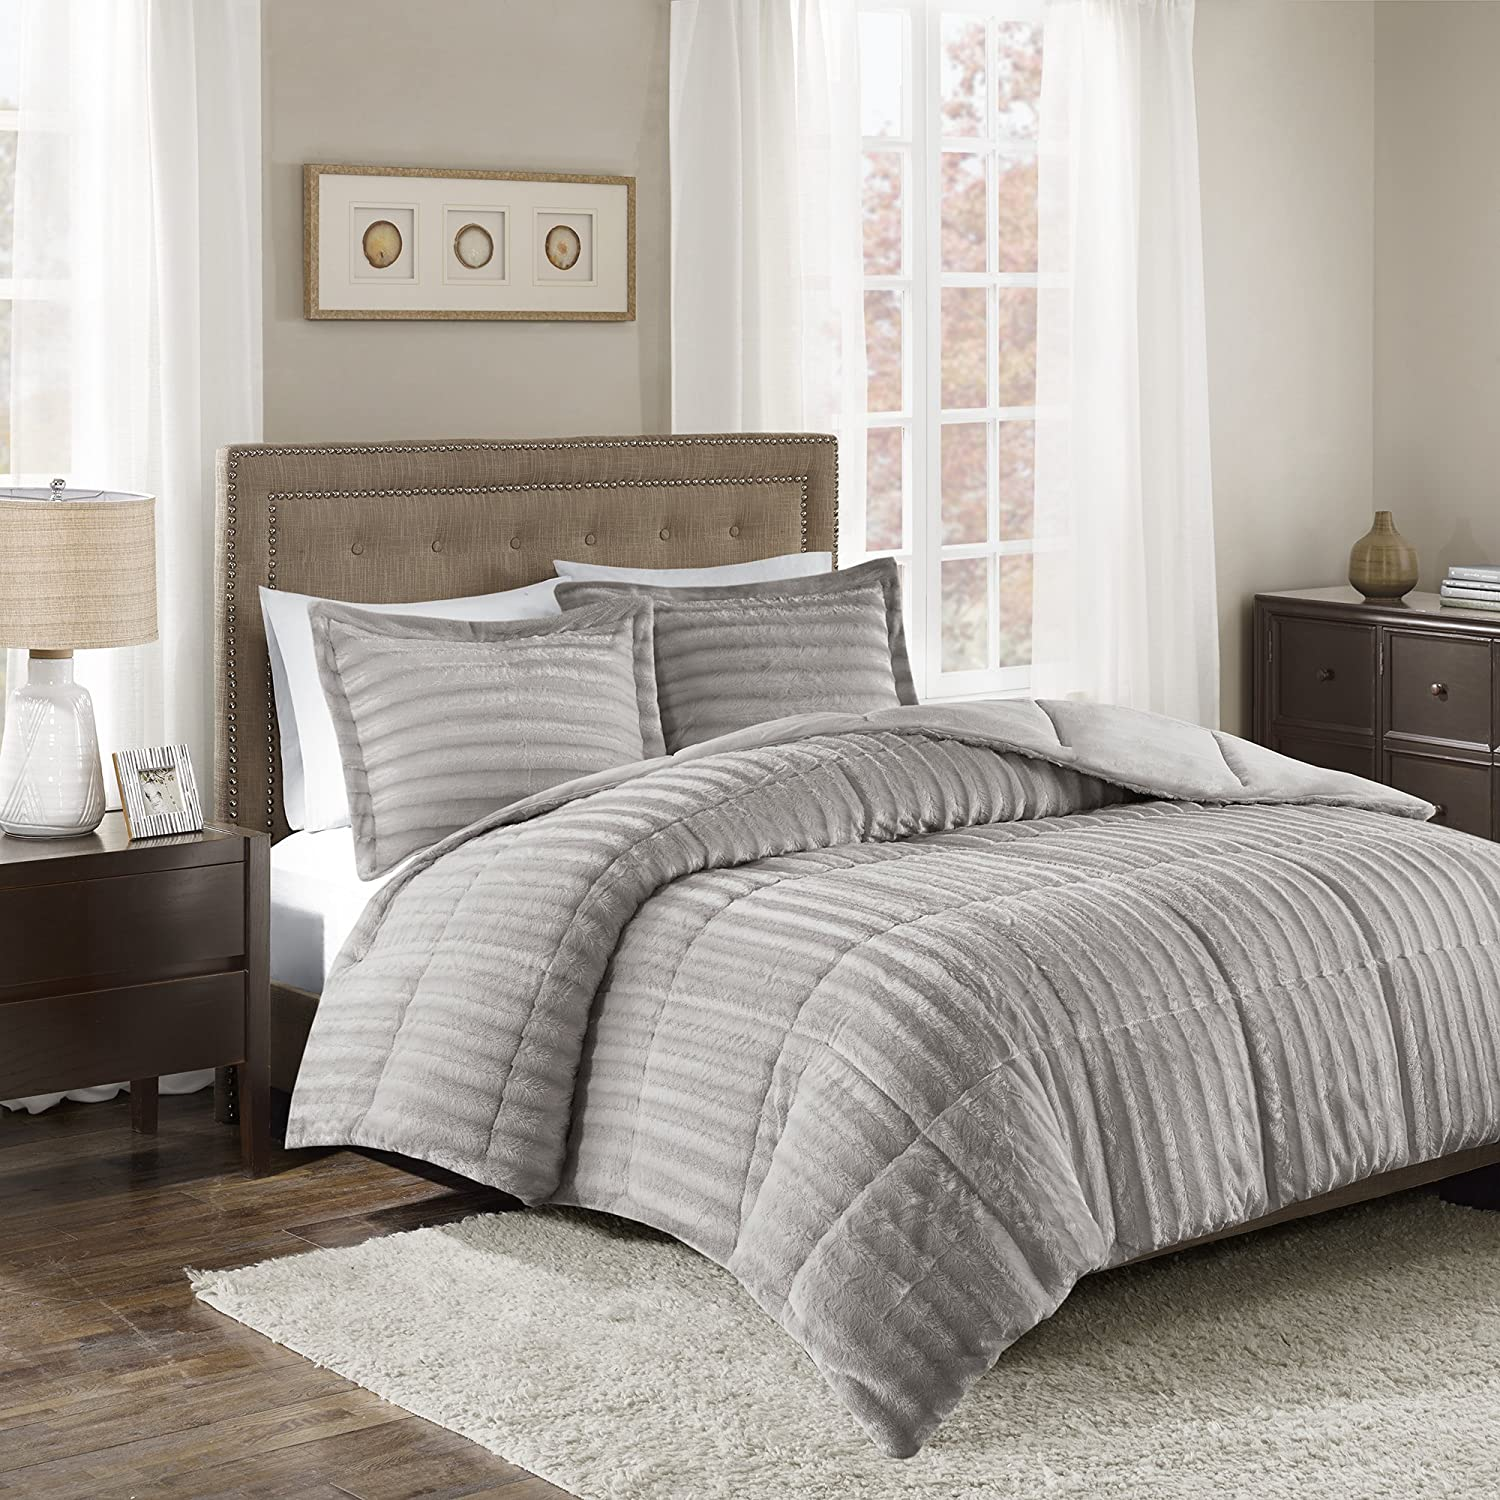 Madison Park Duke Full Queen Size Bed Comforter Set - Grey, Solid – 3 Pieces Bedding Sets – Faux Fur Plush Bedroom Comforters